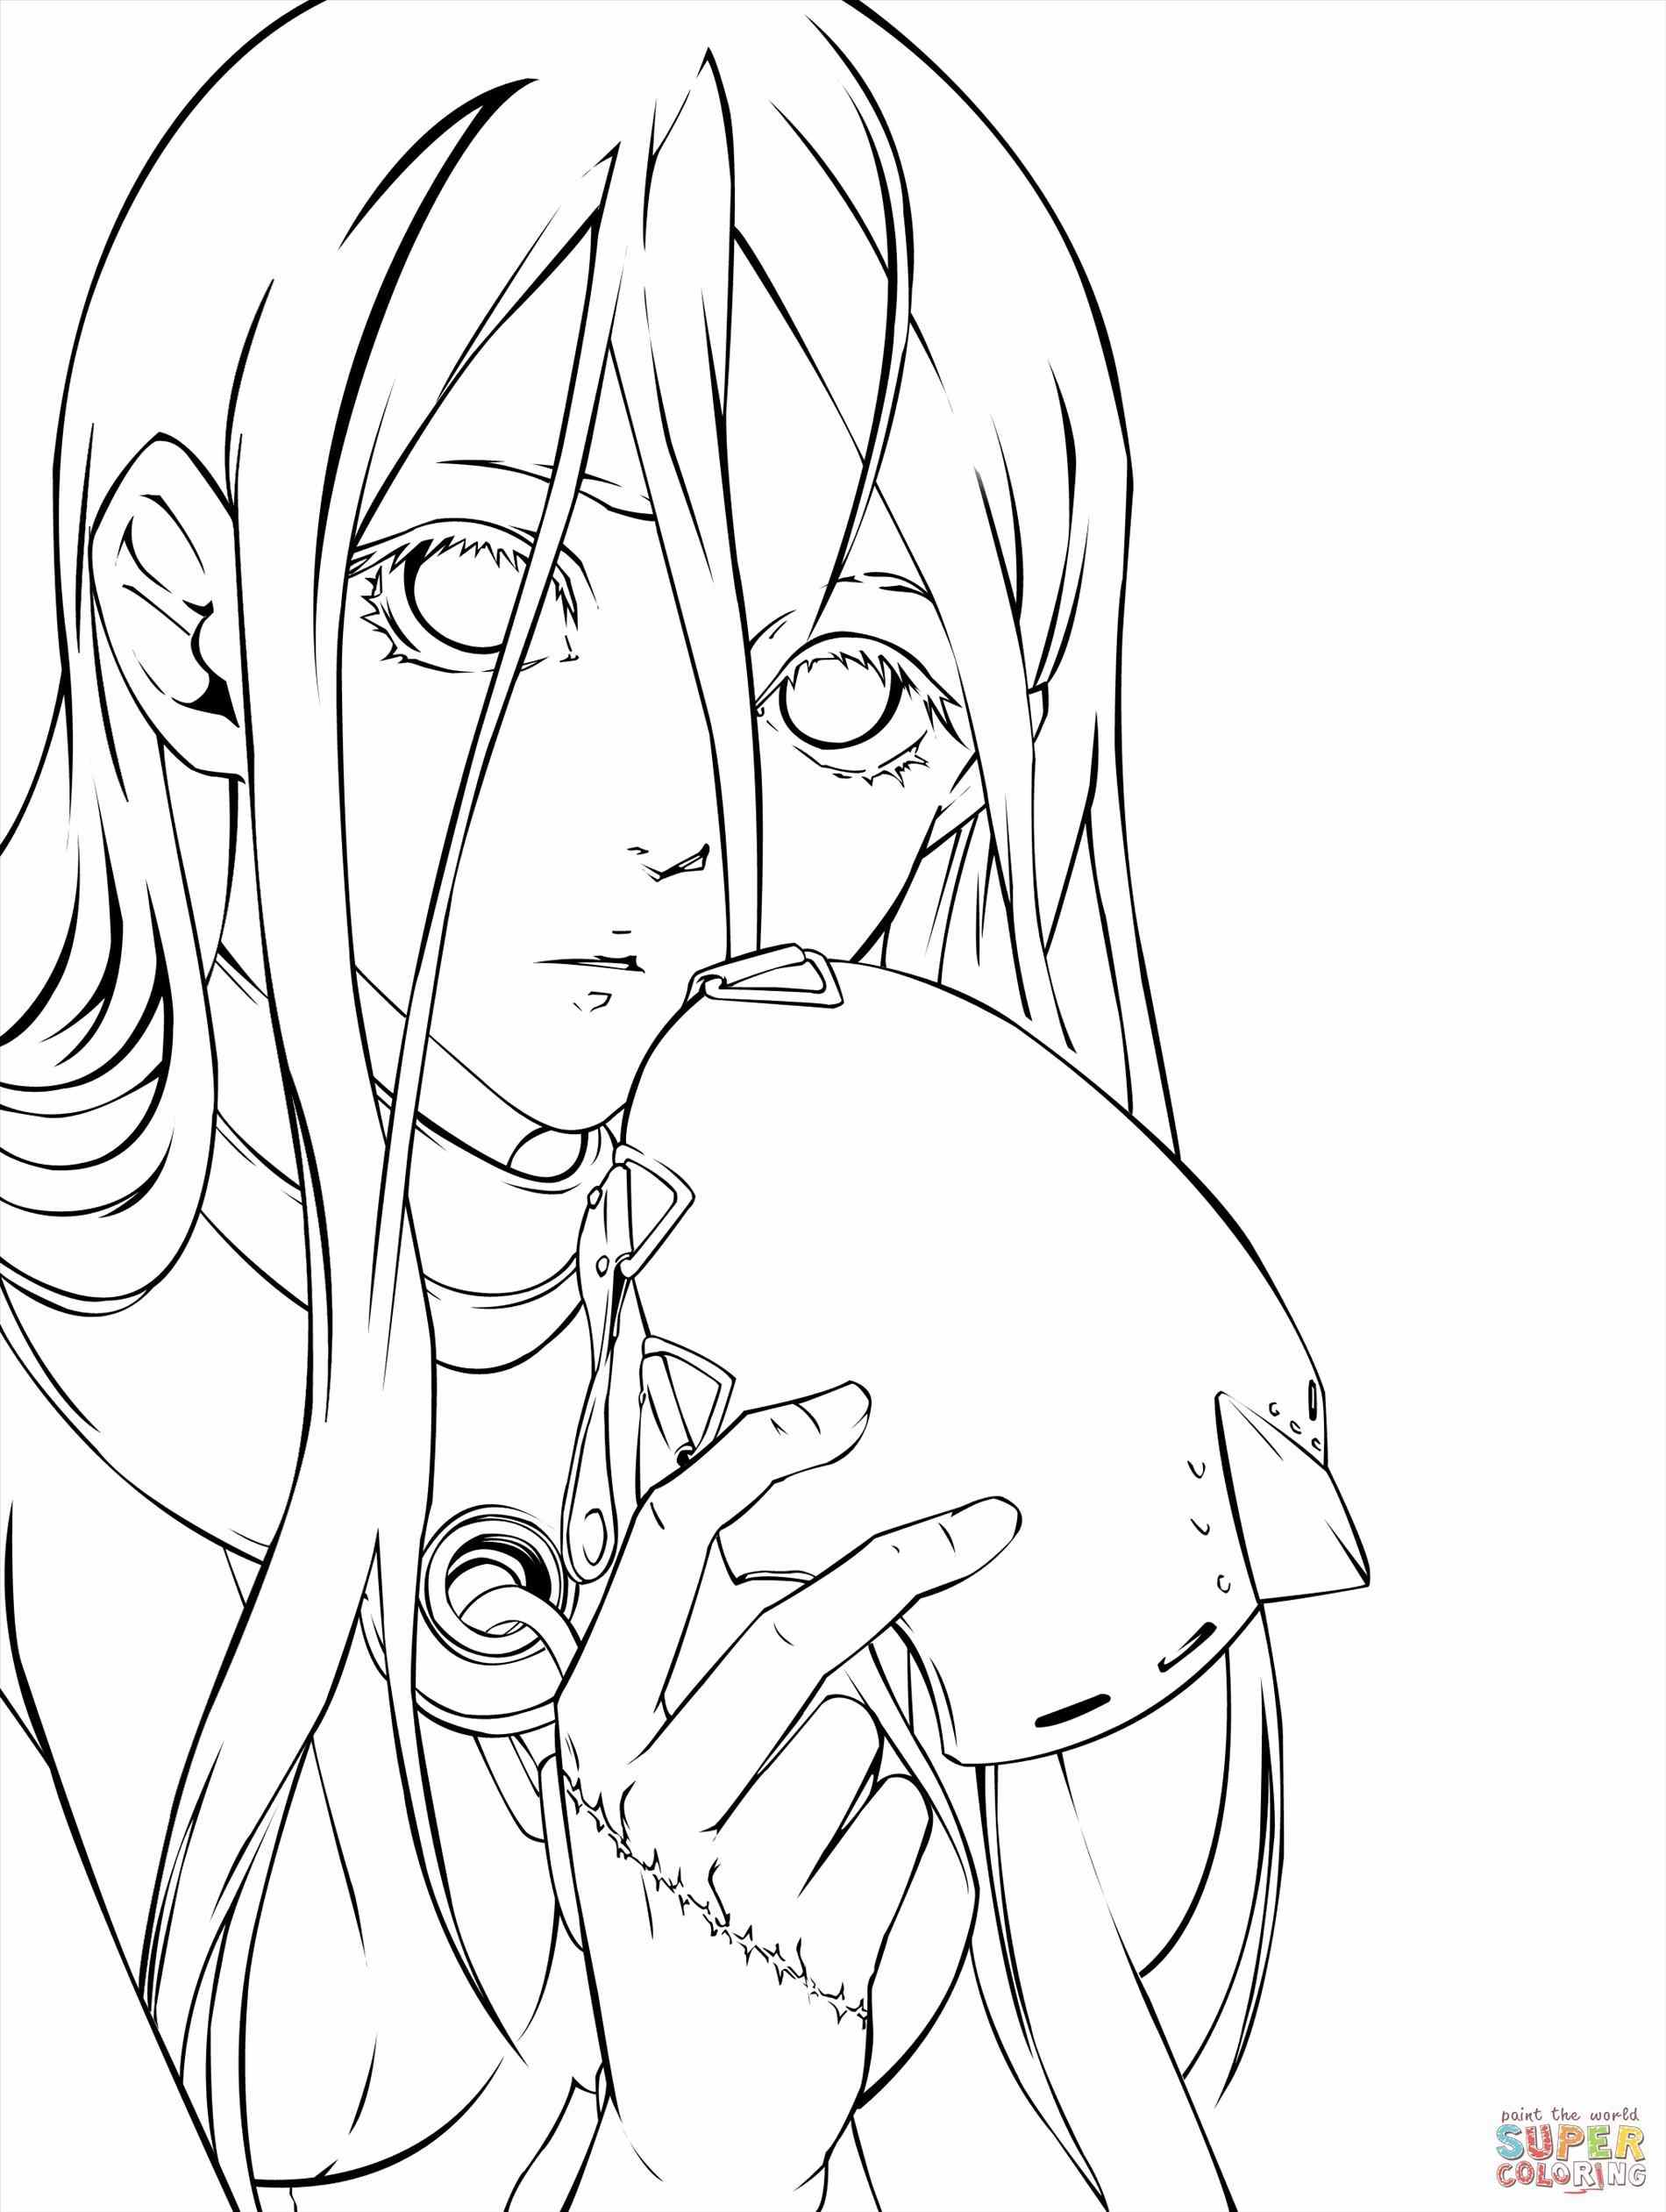 color anime 1189 best anime coloring pages images on pinterest color anime